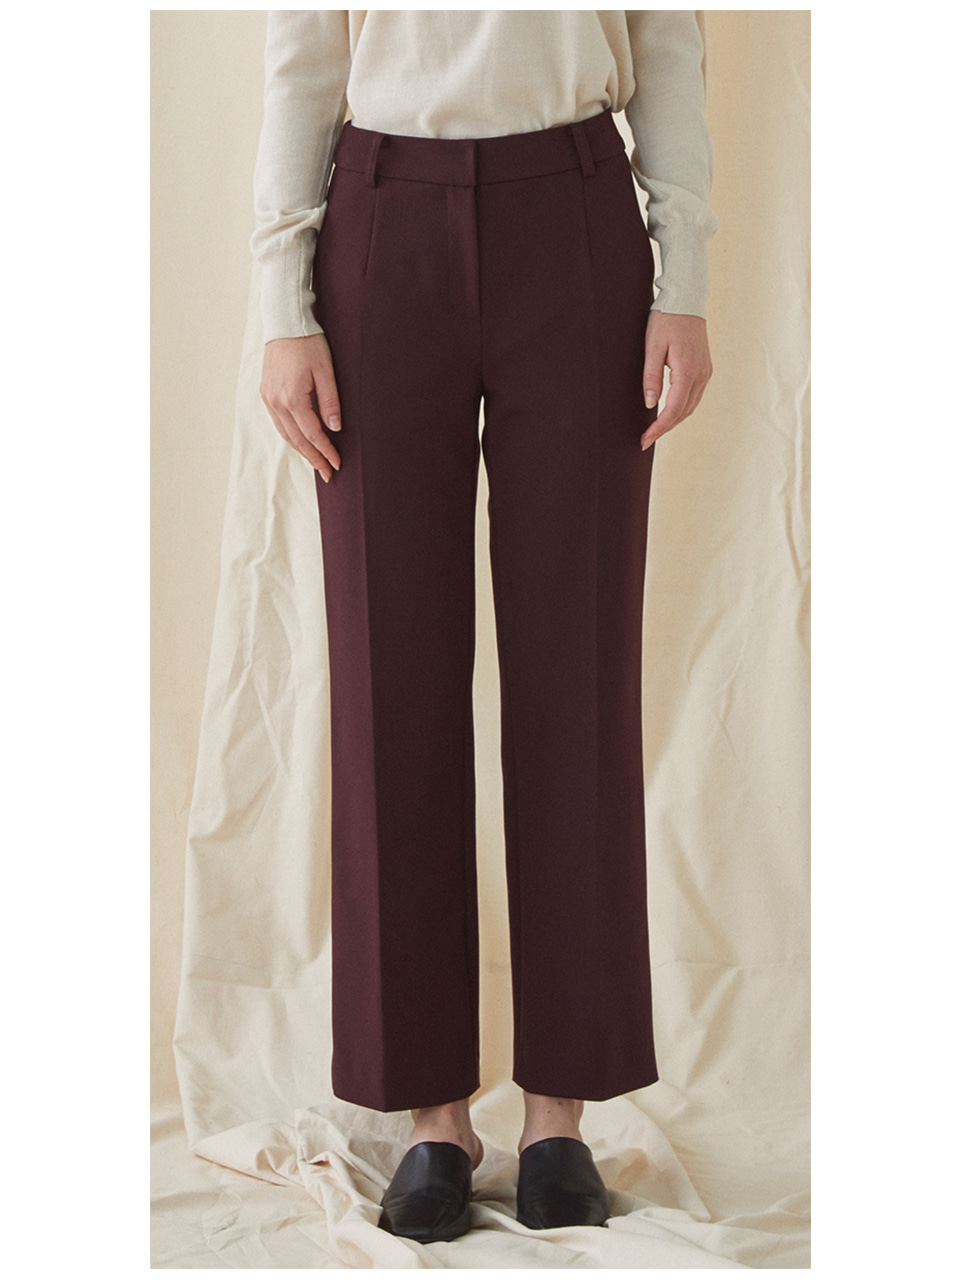 Slim Standard Trousers - wine